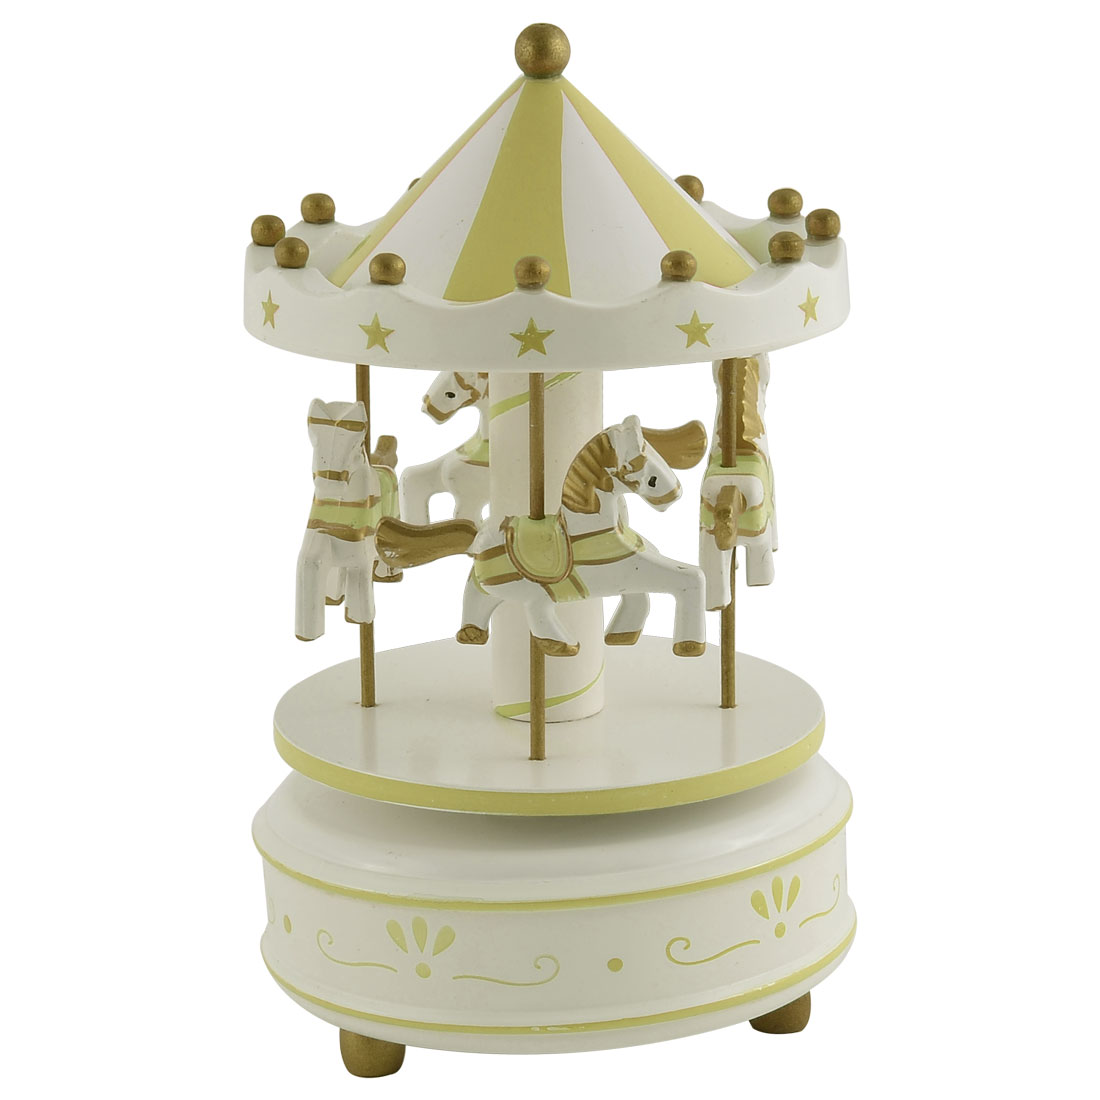 Plastic Shell 4 Wooden Horses Merry-Go-Round Carousel Music Box Gold Tone